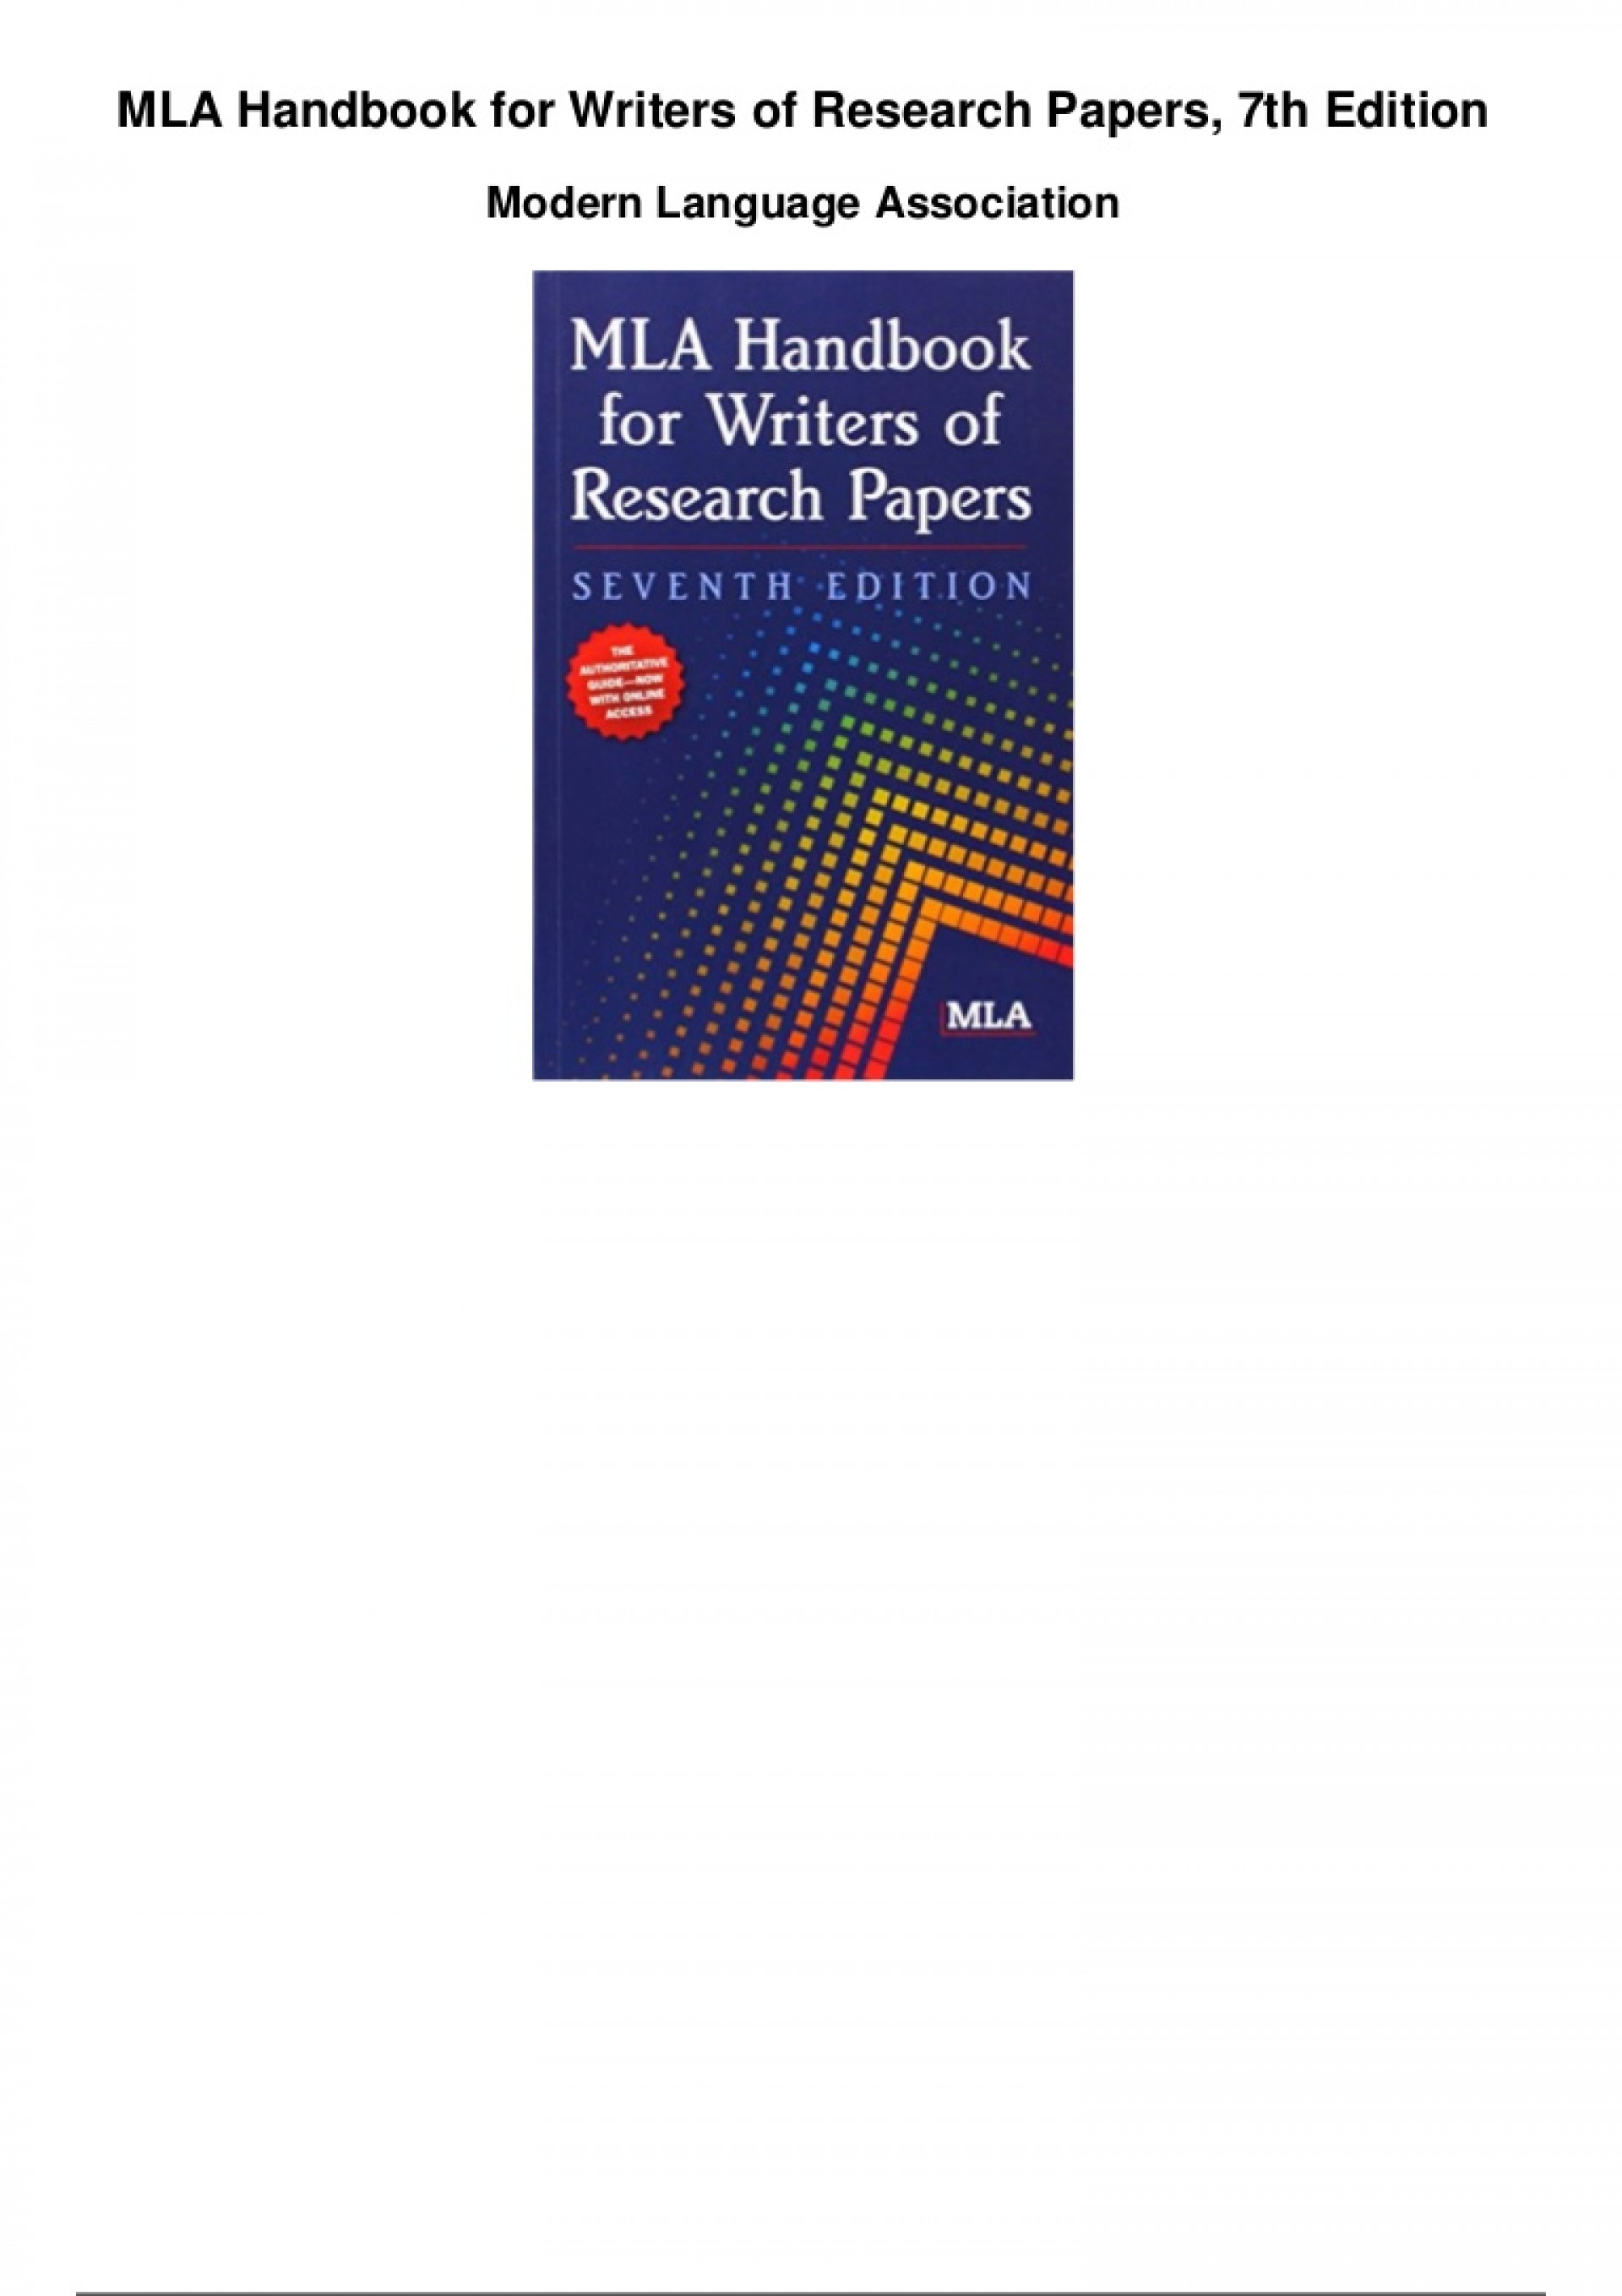 002 Mla Handbook For Writers Of Research Papers 7th Edition Paper Thumbnail Fearsome Pdf Free 2009 Summary 1920